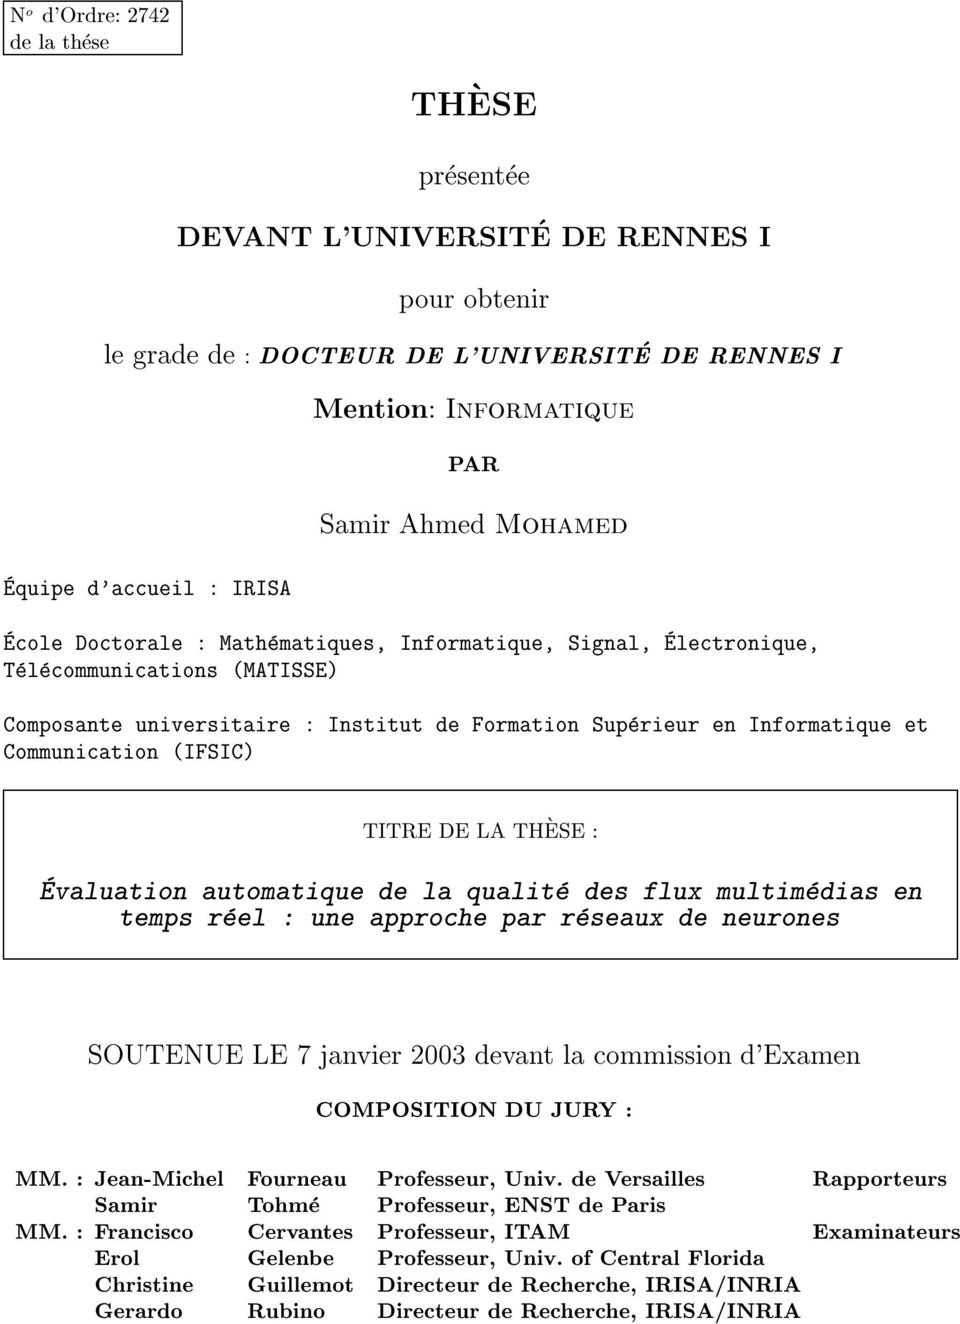 Communication (IFSIC) TITRE DE LA TH ESE : Evaluation automatique de la qualite des flux multimedias en temps reel : une approche par reseaux de neurones SOUTENUE LE 7 janvier 2003 devant la